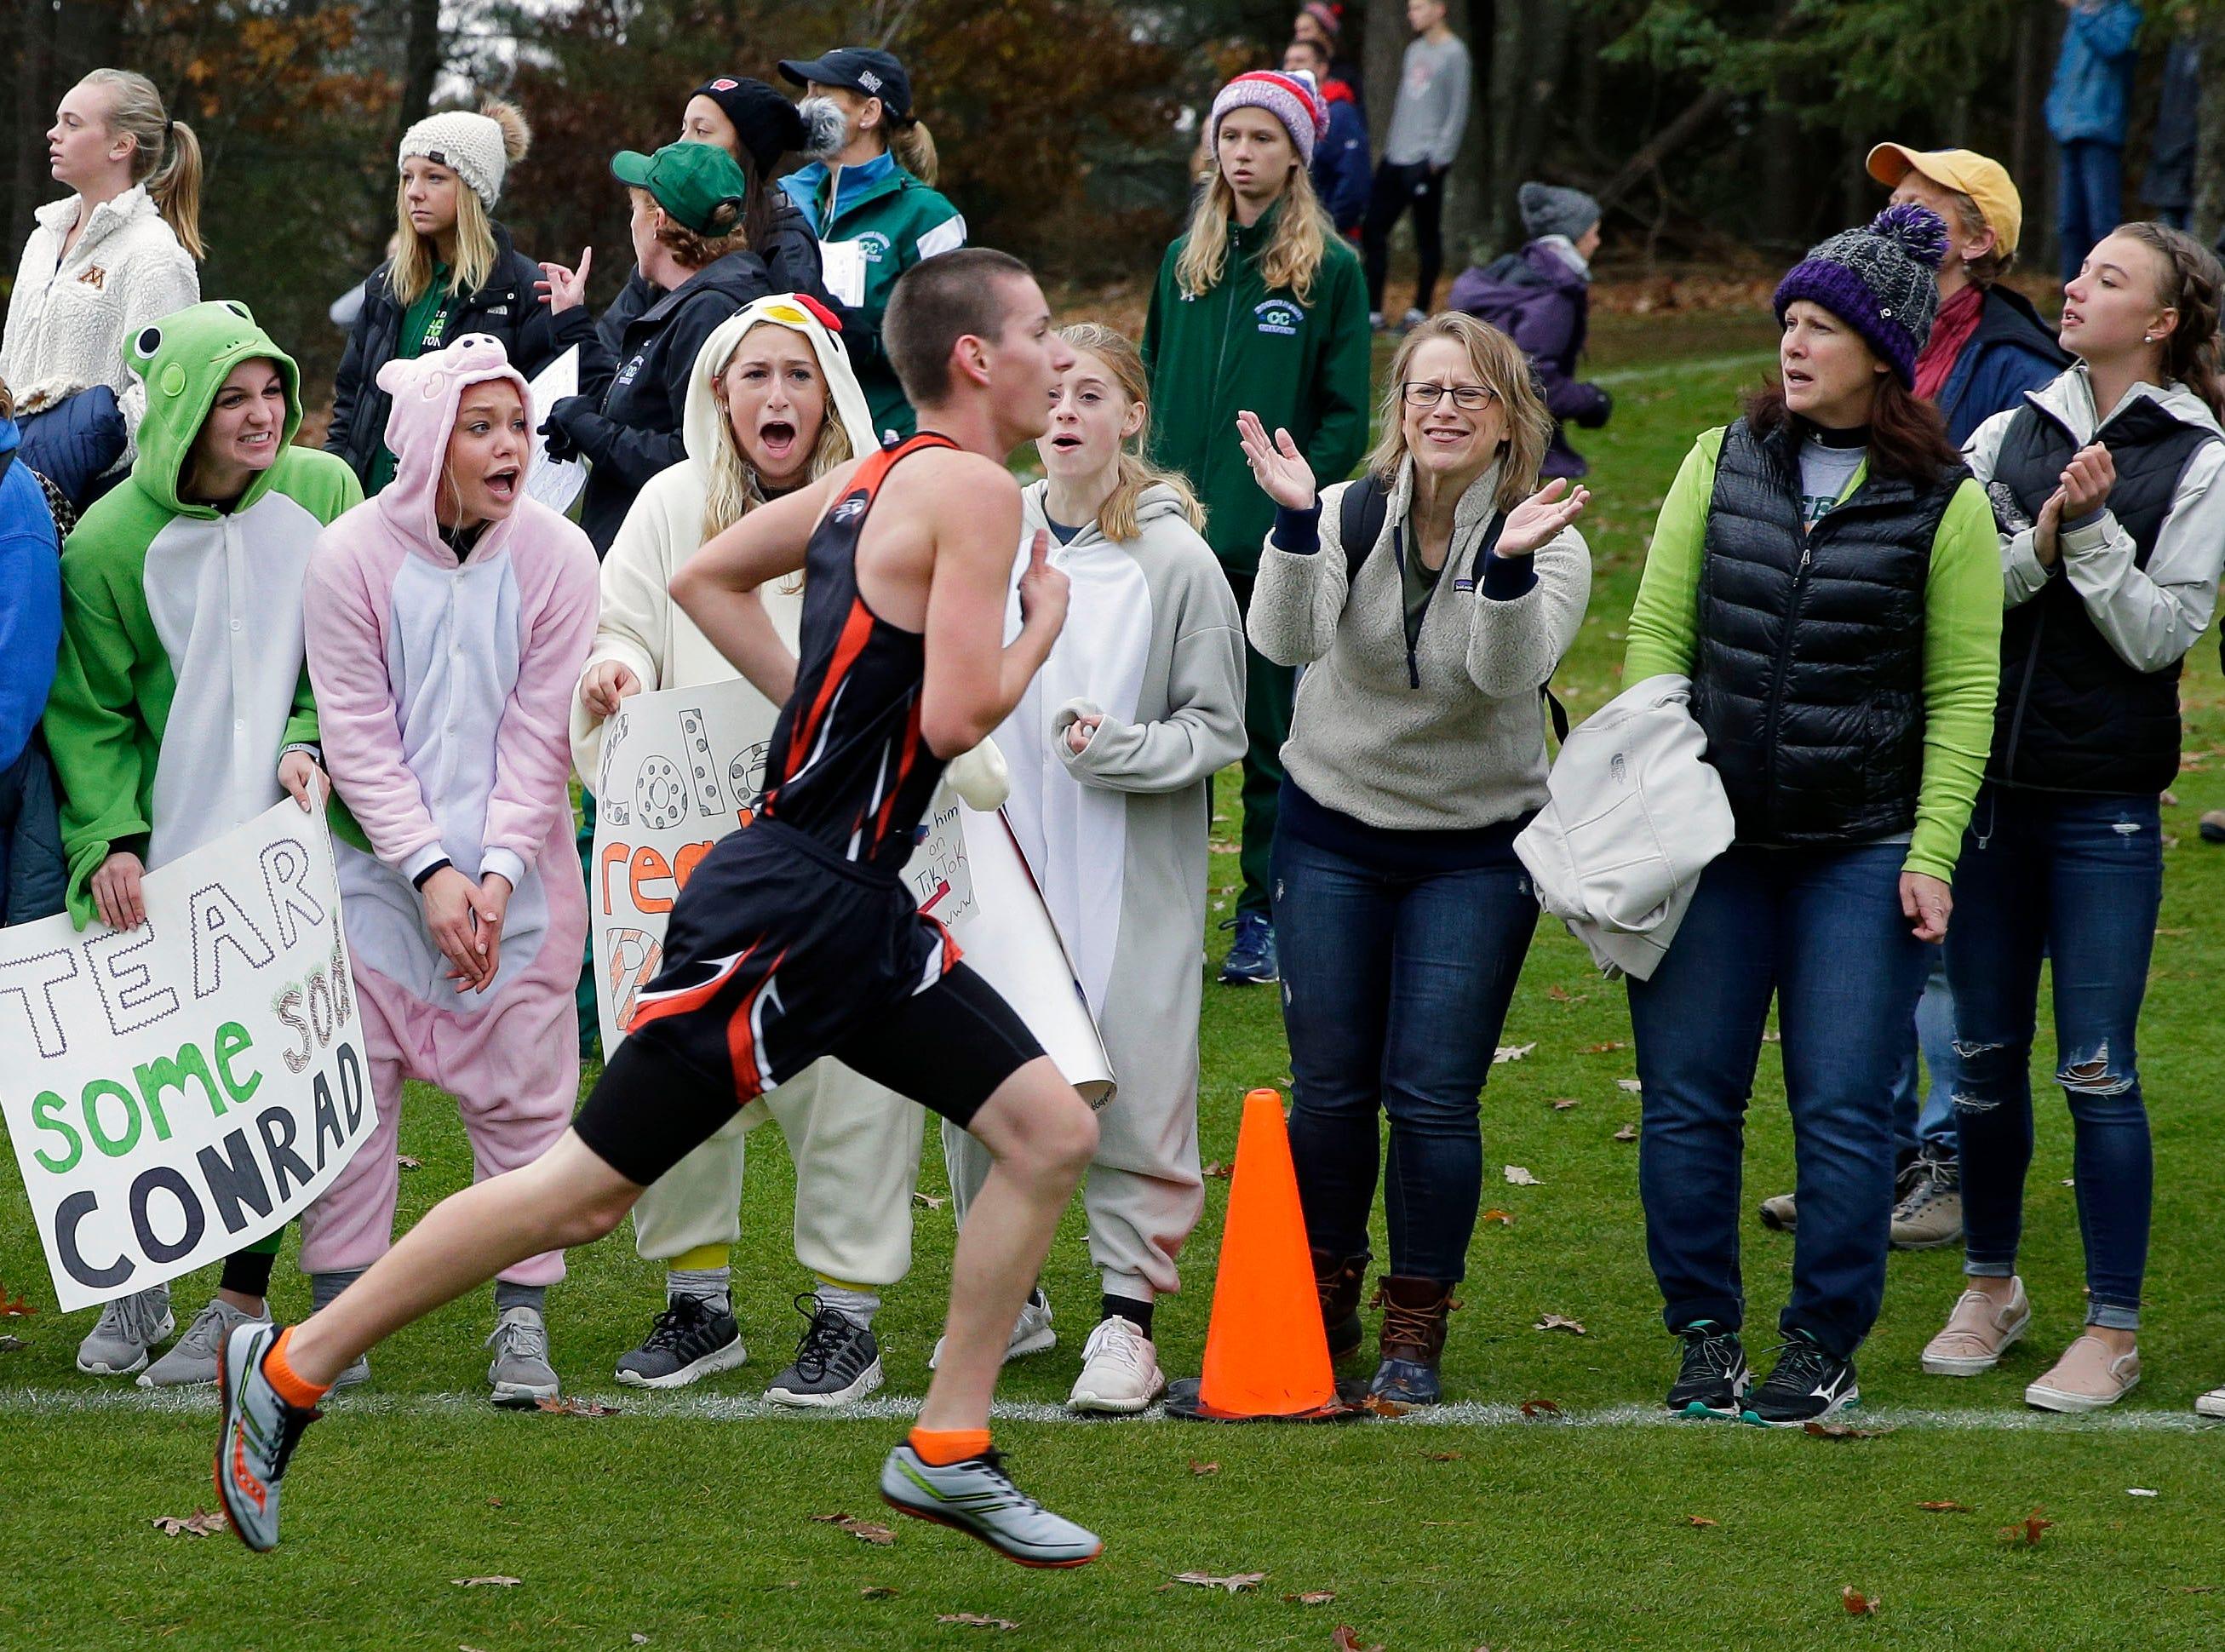 Fans cheer for runners as the 2018 WIAA Cross Country State Meet takes place Saturday, October 27, 2018, at the Ridges Golf Course in Wisconsin Rapids, Wis.Ron Page/USA TODAY NETWORK-Wisconsin